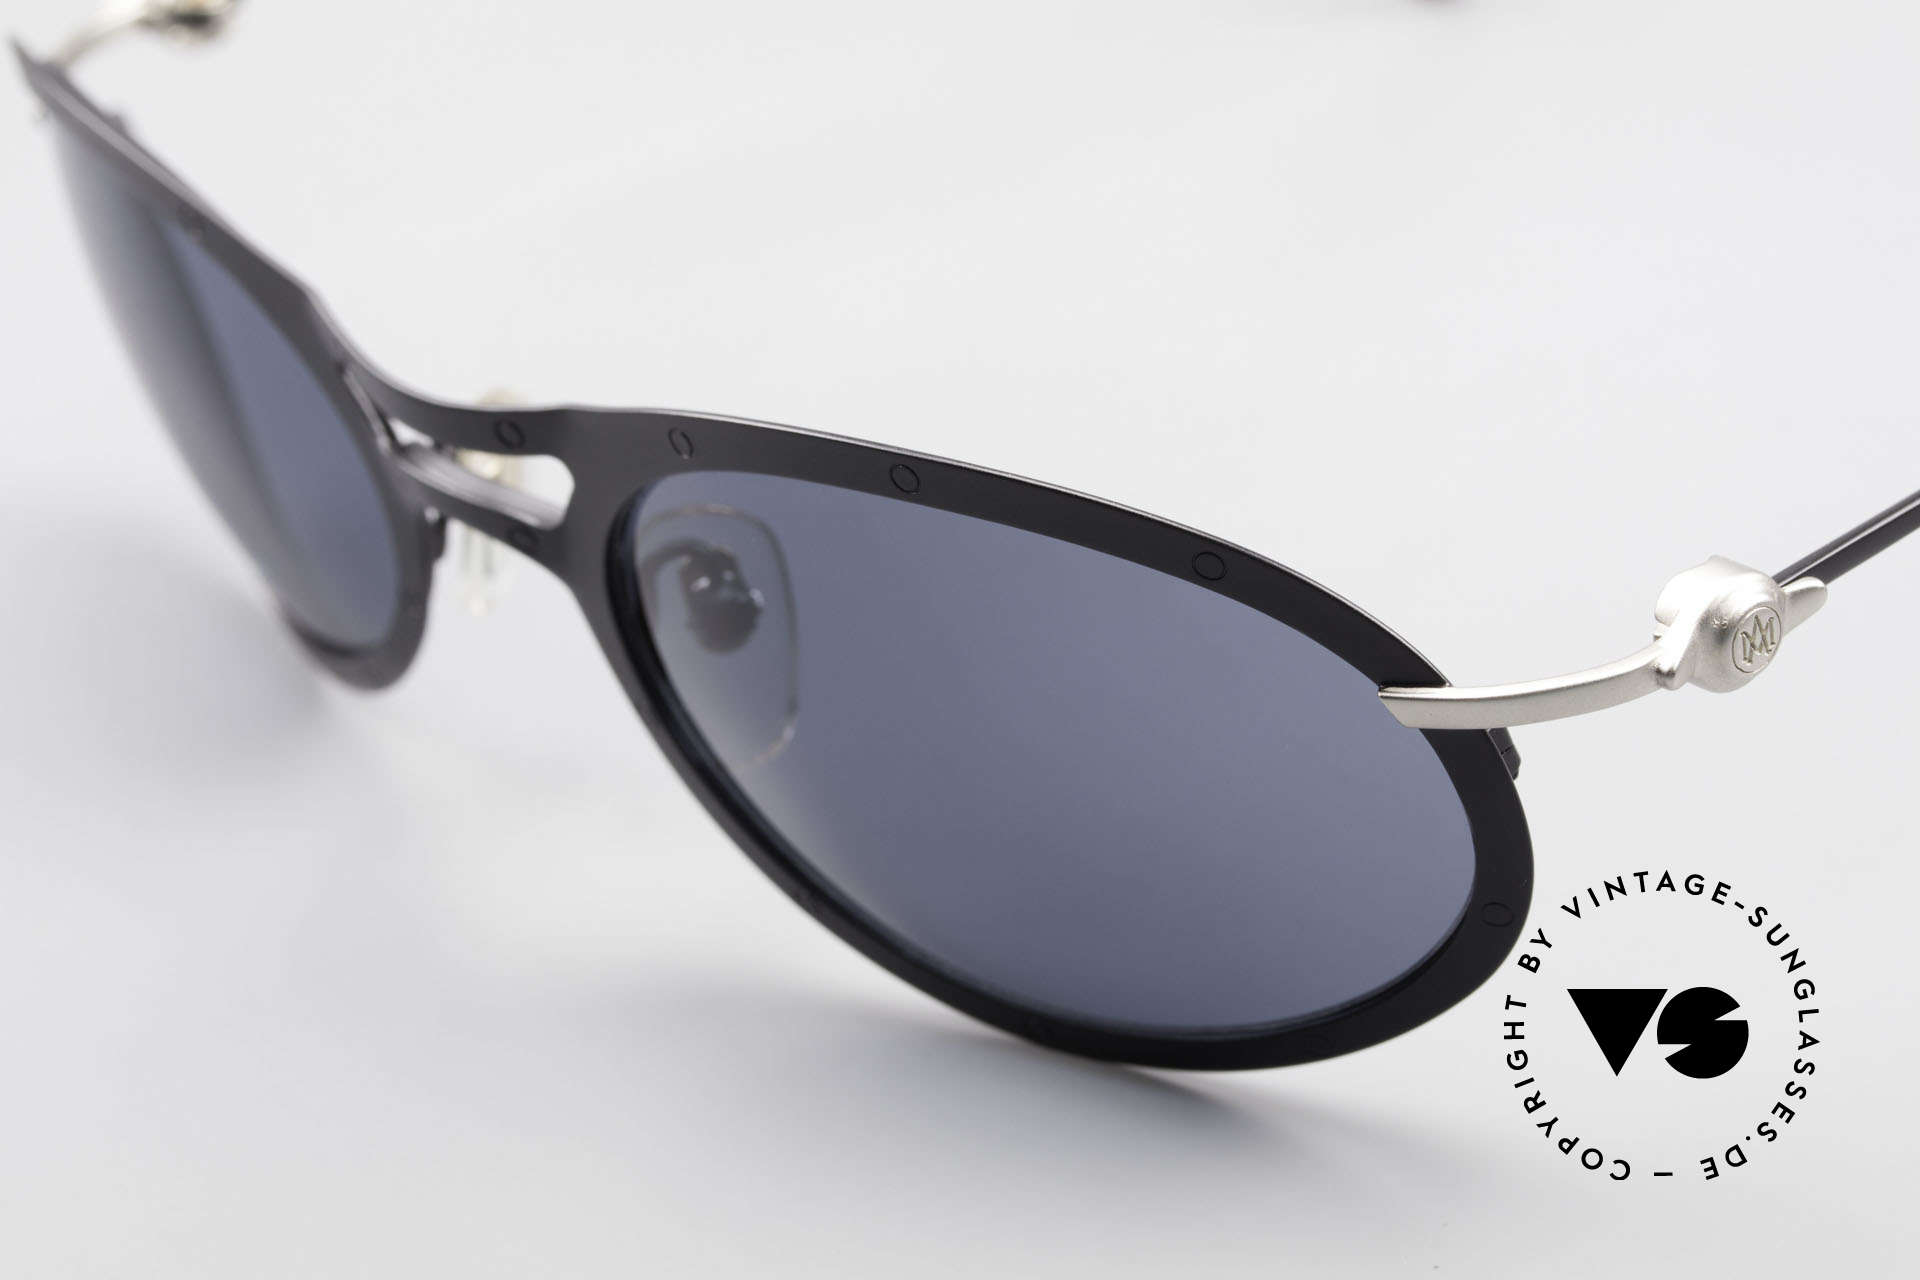 Aston Martin AM33 90's Wrap Around Sunglasses, never worn (like all our rare VINTAGE high-end shades), Made for Men